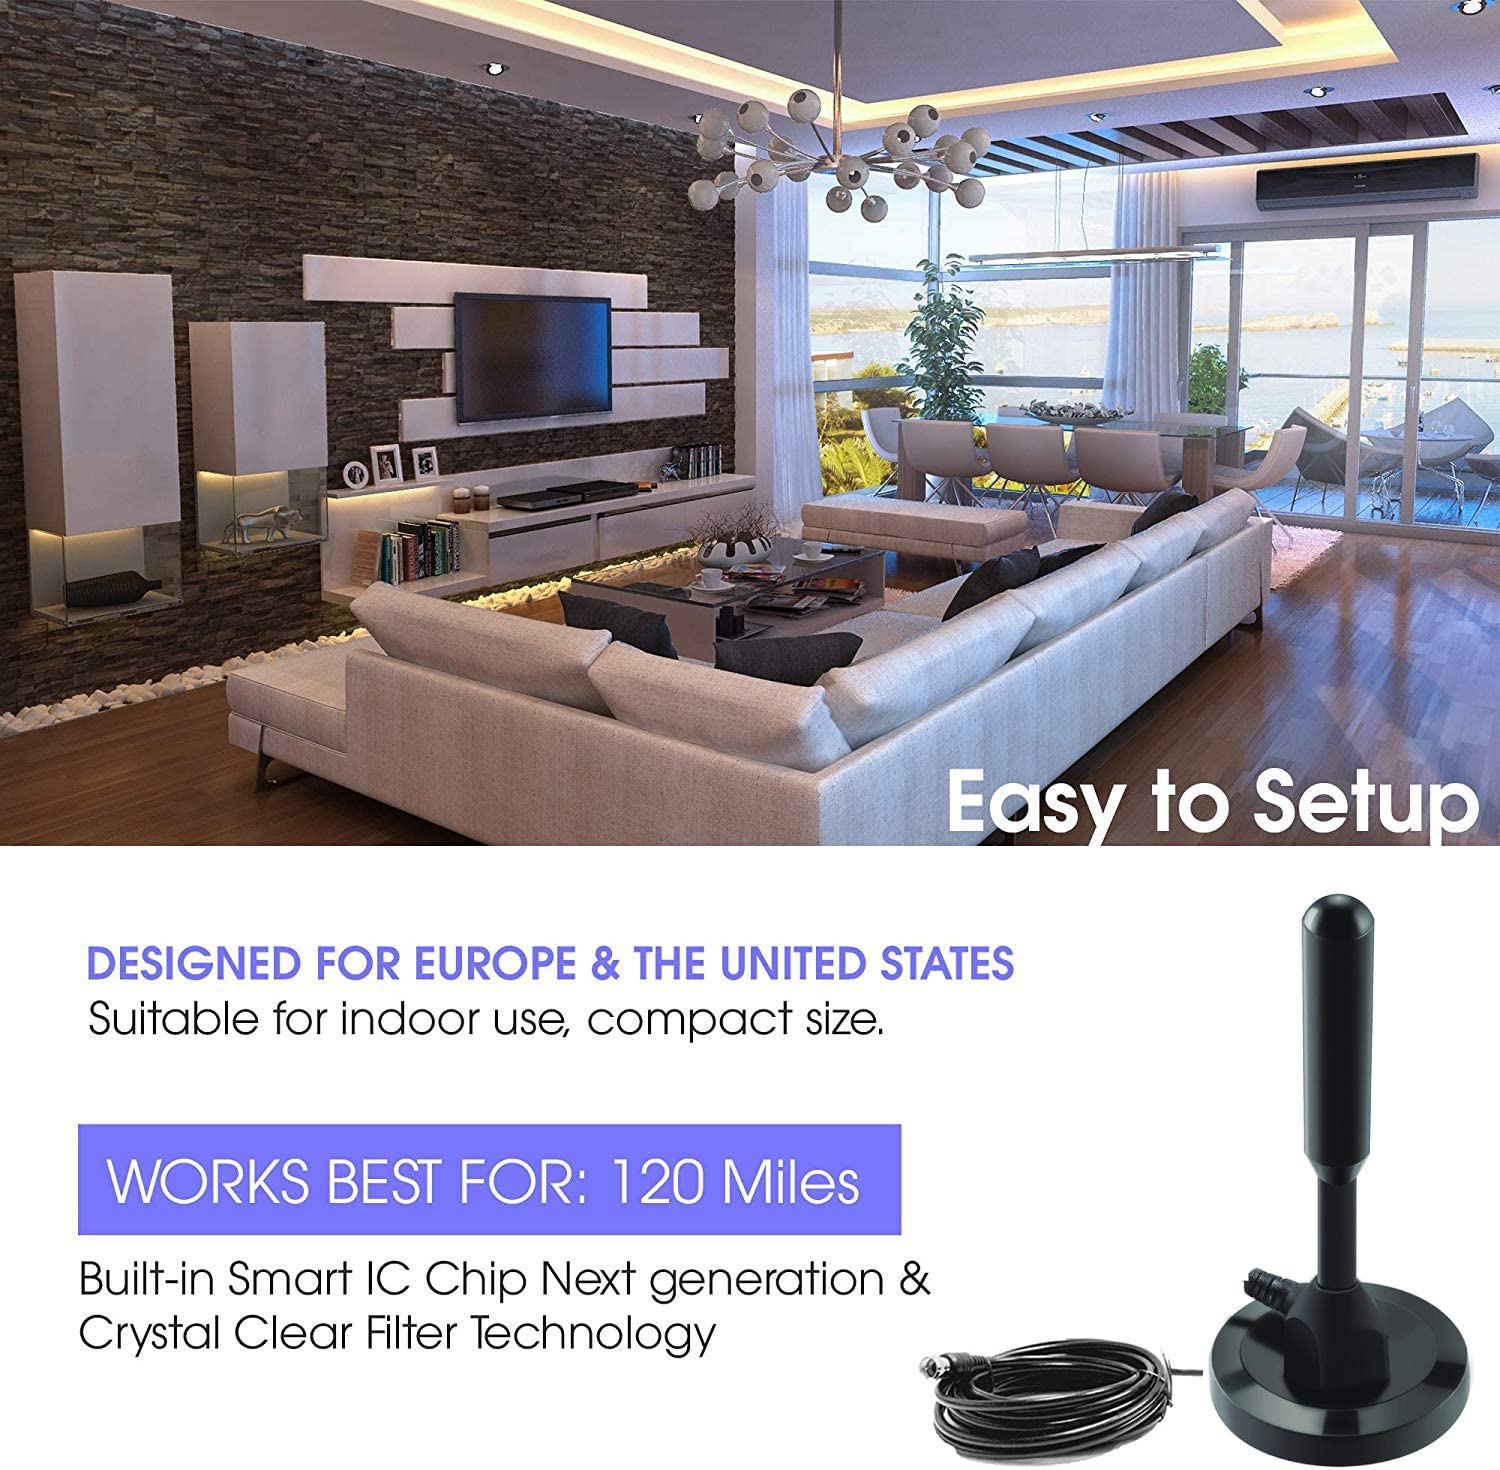 Full HD Amplified Smart TV Digital Indoor Antenna Newest 2019 HDTV Powerful Best Amplifier Signal Booster 60 120 Miles Range Support 4K 1080p and Older TVs 9.8ft Coax Cable//USB Power Adapter